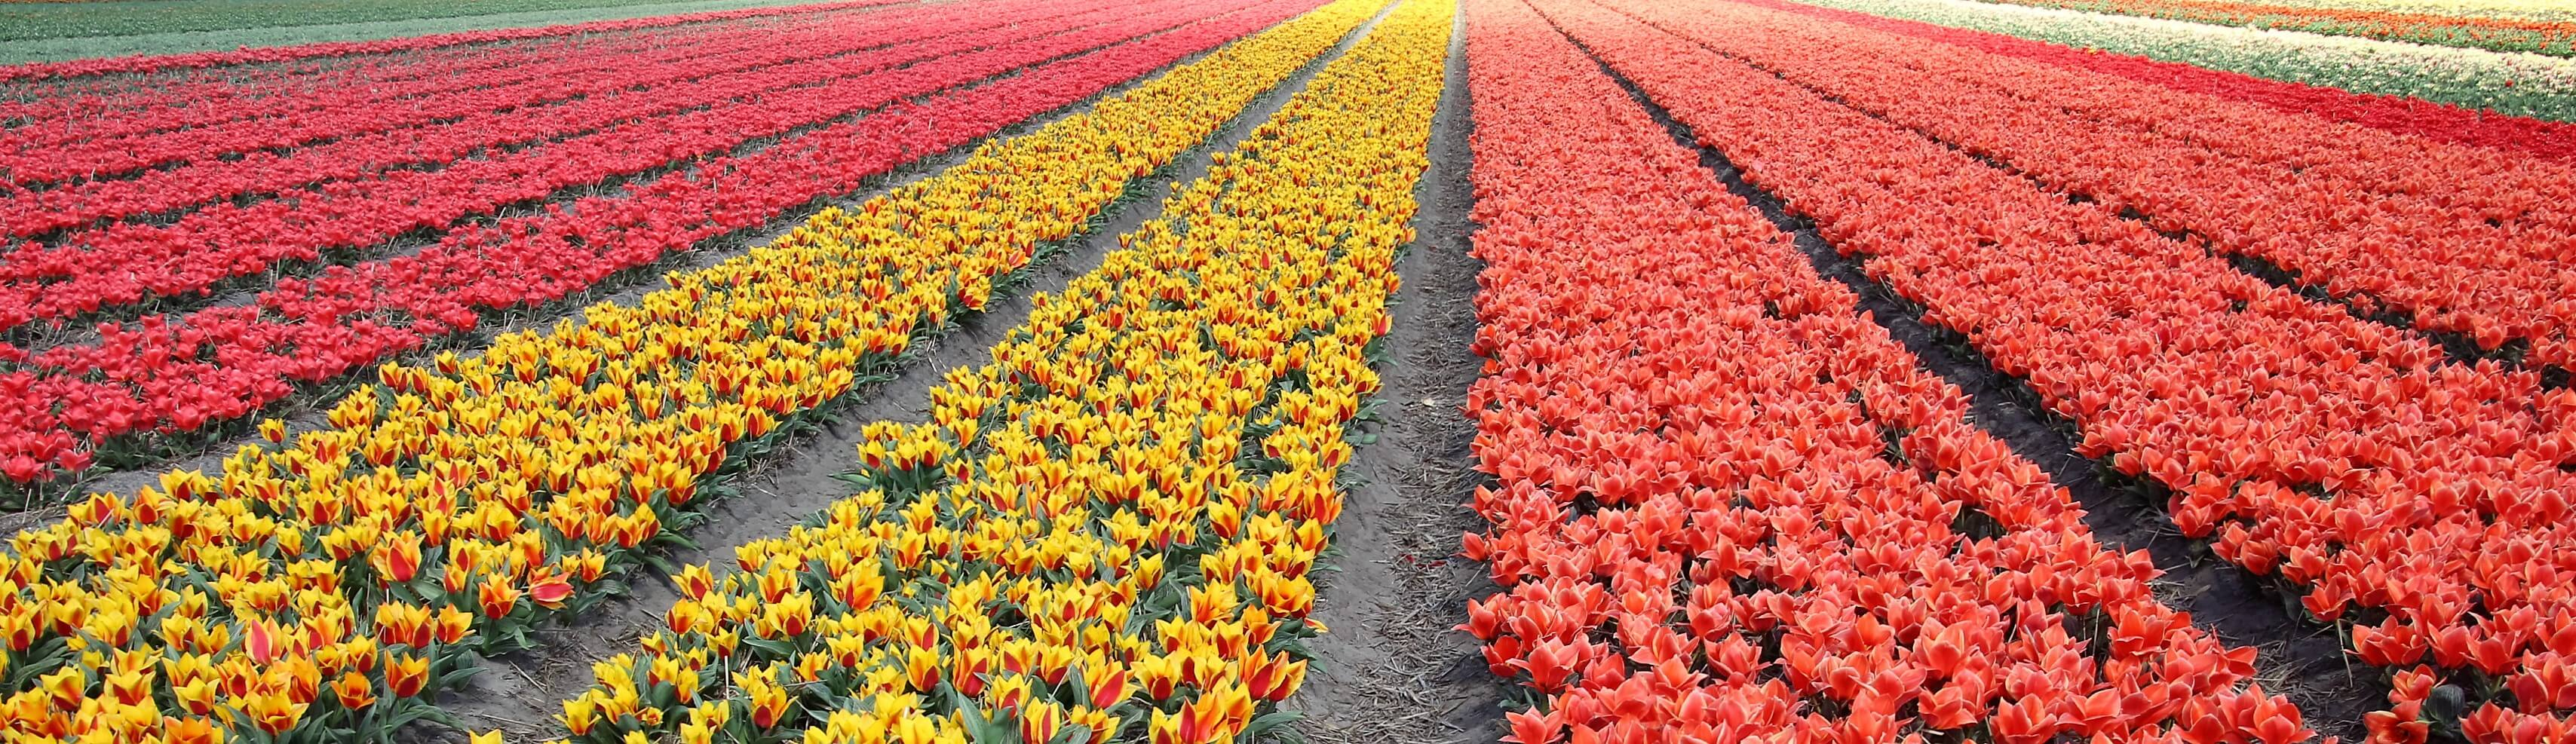 History of Dutch tulips